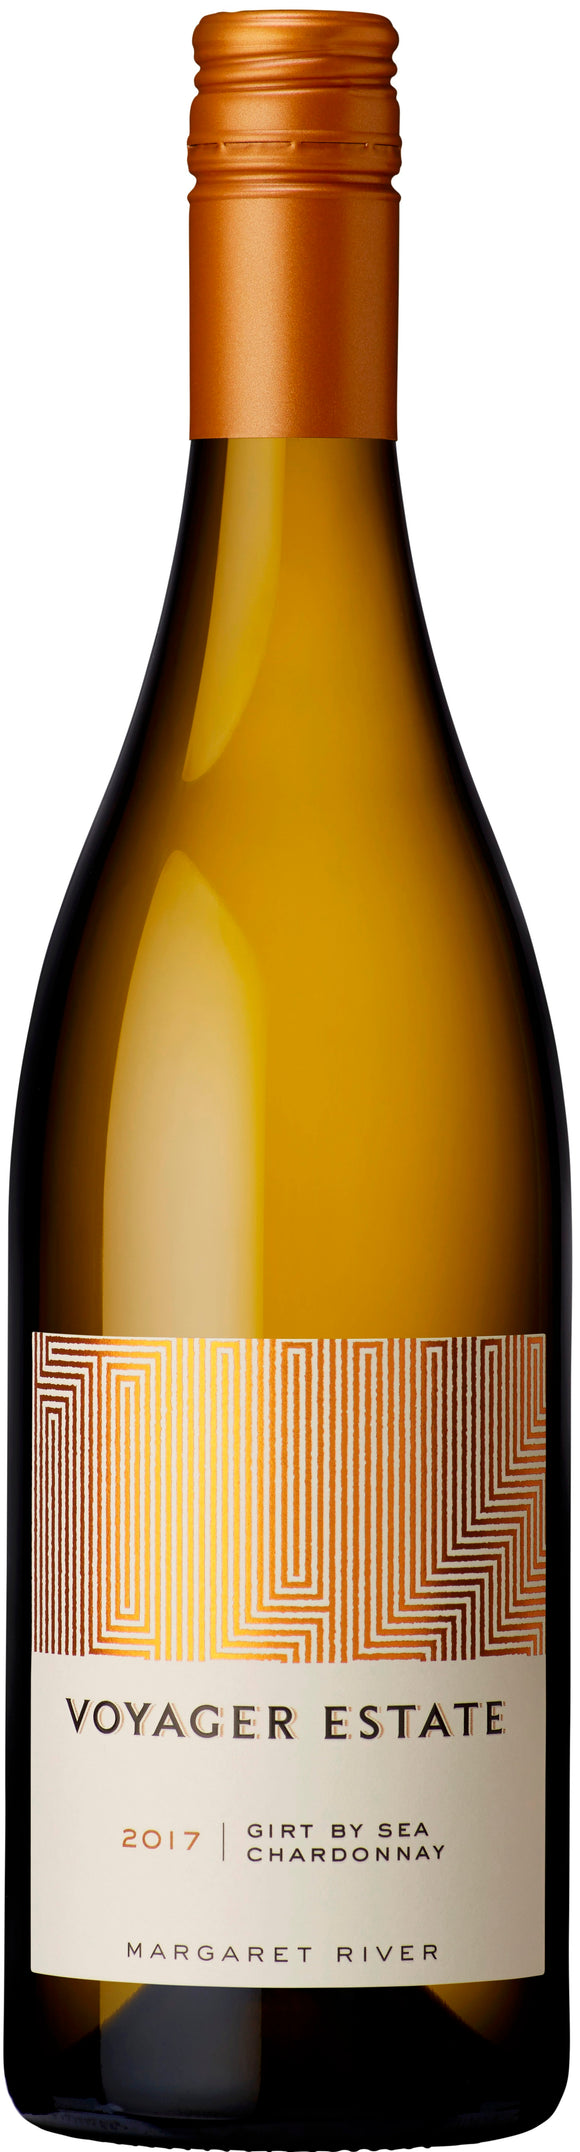 Voyager Girt by Sea Chardonnay